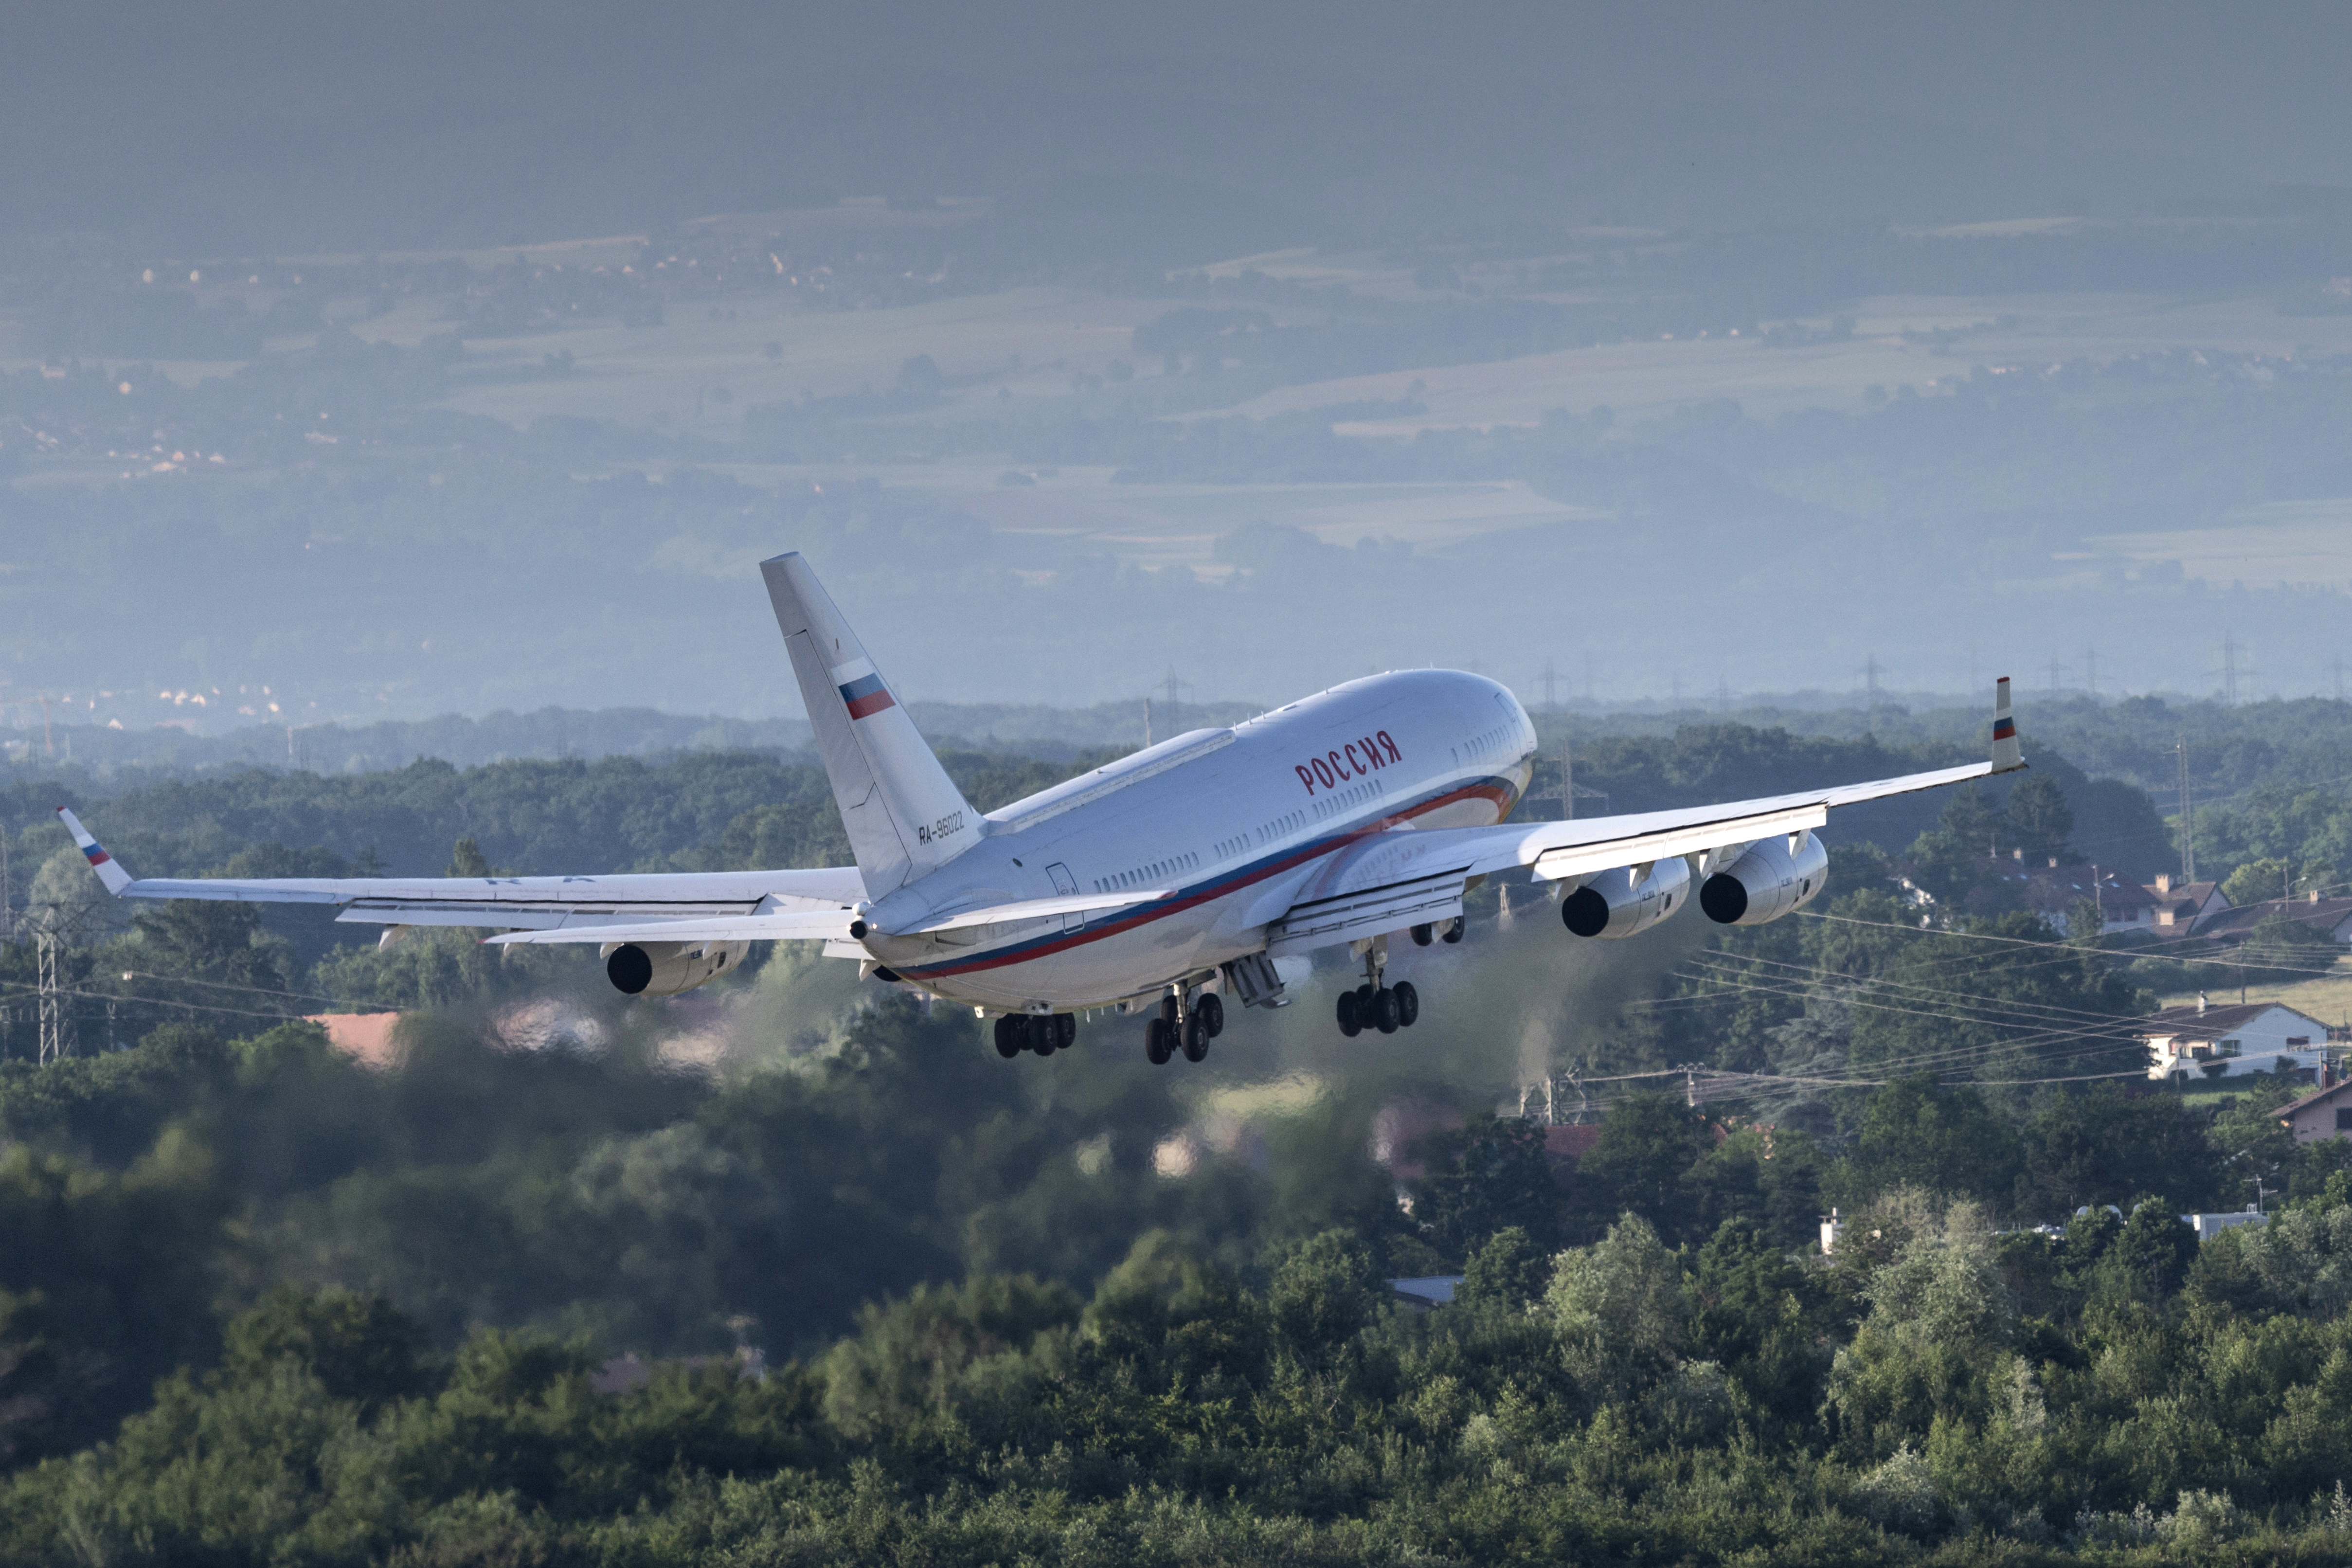 The presidential Ilyushin Il-96, believed to be carrying Russian President Vladimir Putin, takes off from Geneva Airport Cointrin following a U.S.-Russia summit on June 16, 2021. (Alessandro della Valle/Keystone via Getty Images)